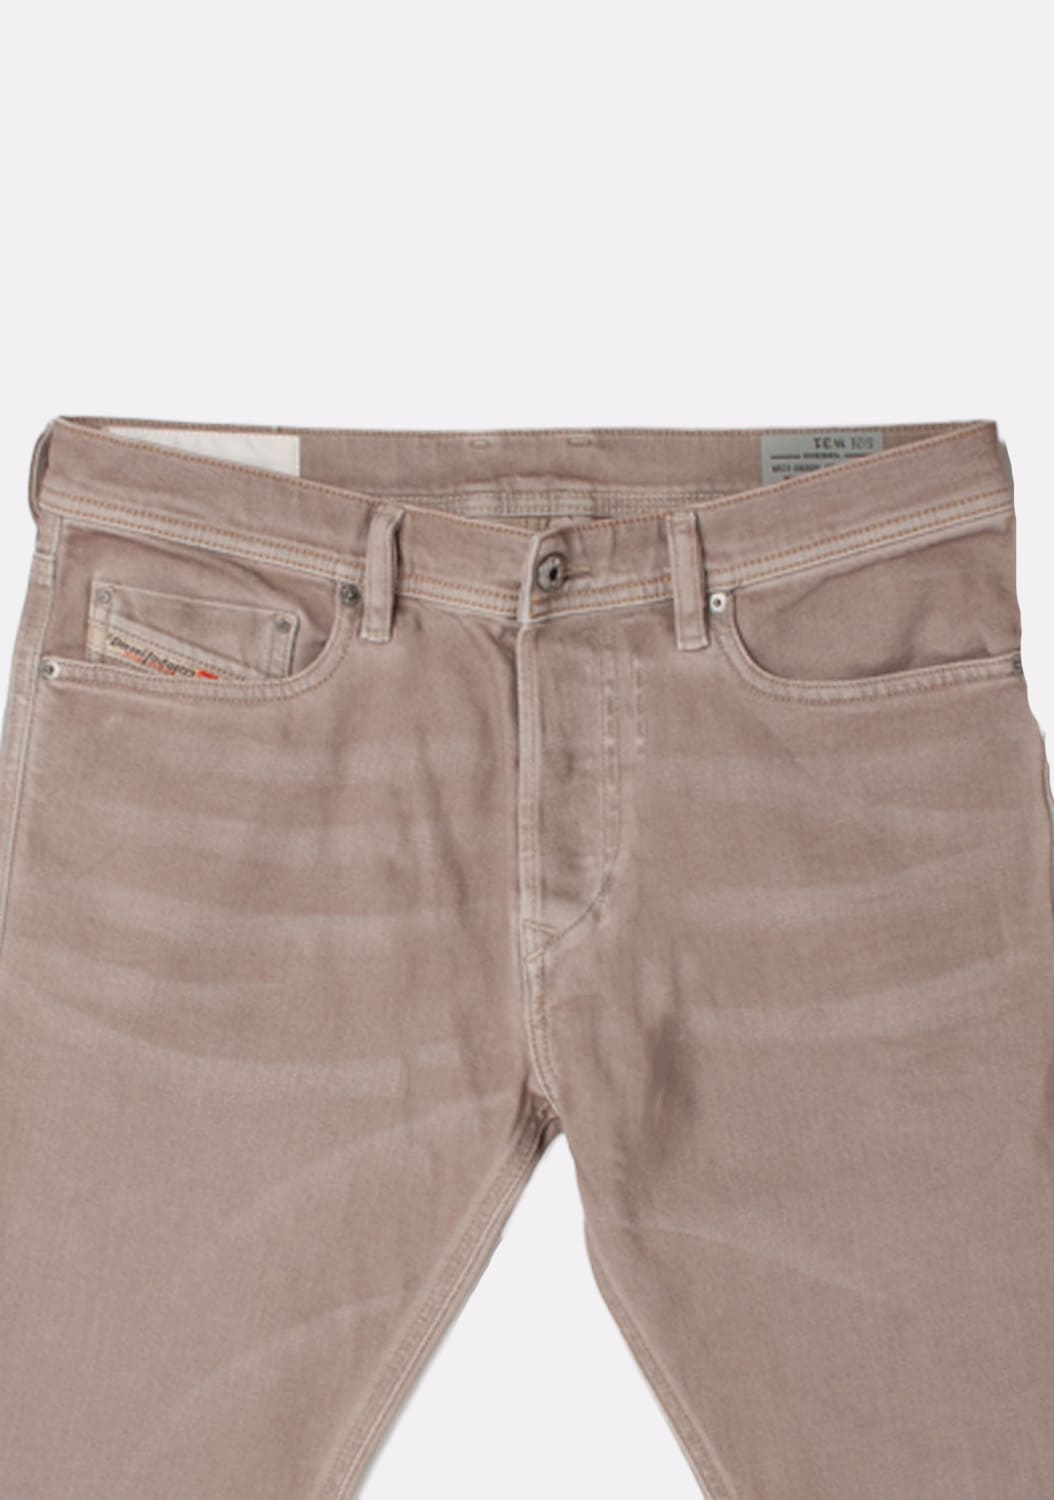 Diesel-Tepphar-0850Y-Stretch-Slim-Carrot-dzinsai-dydis-31 (3)